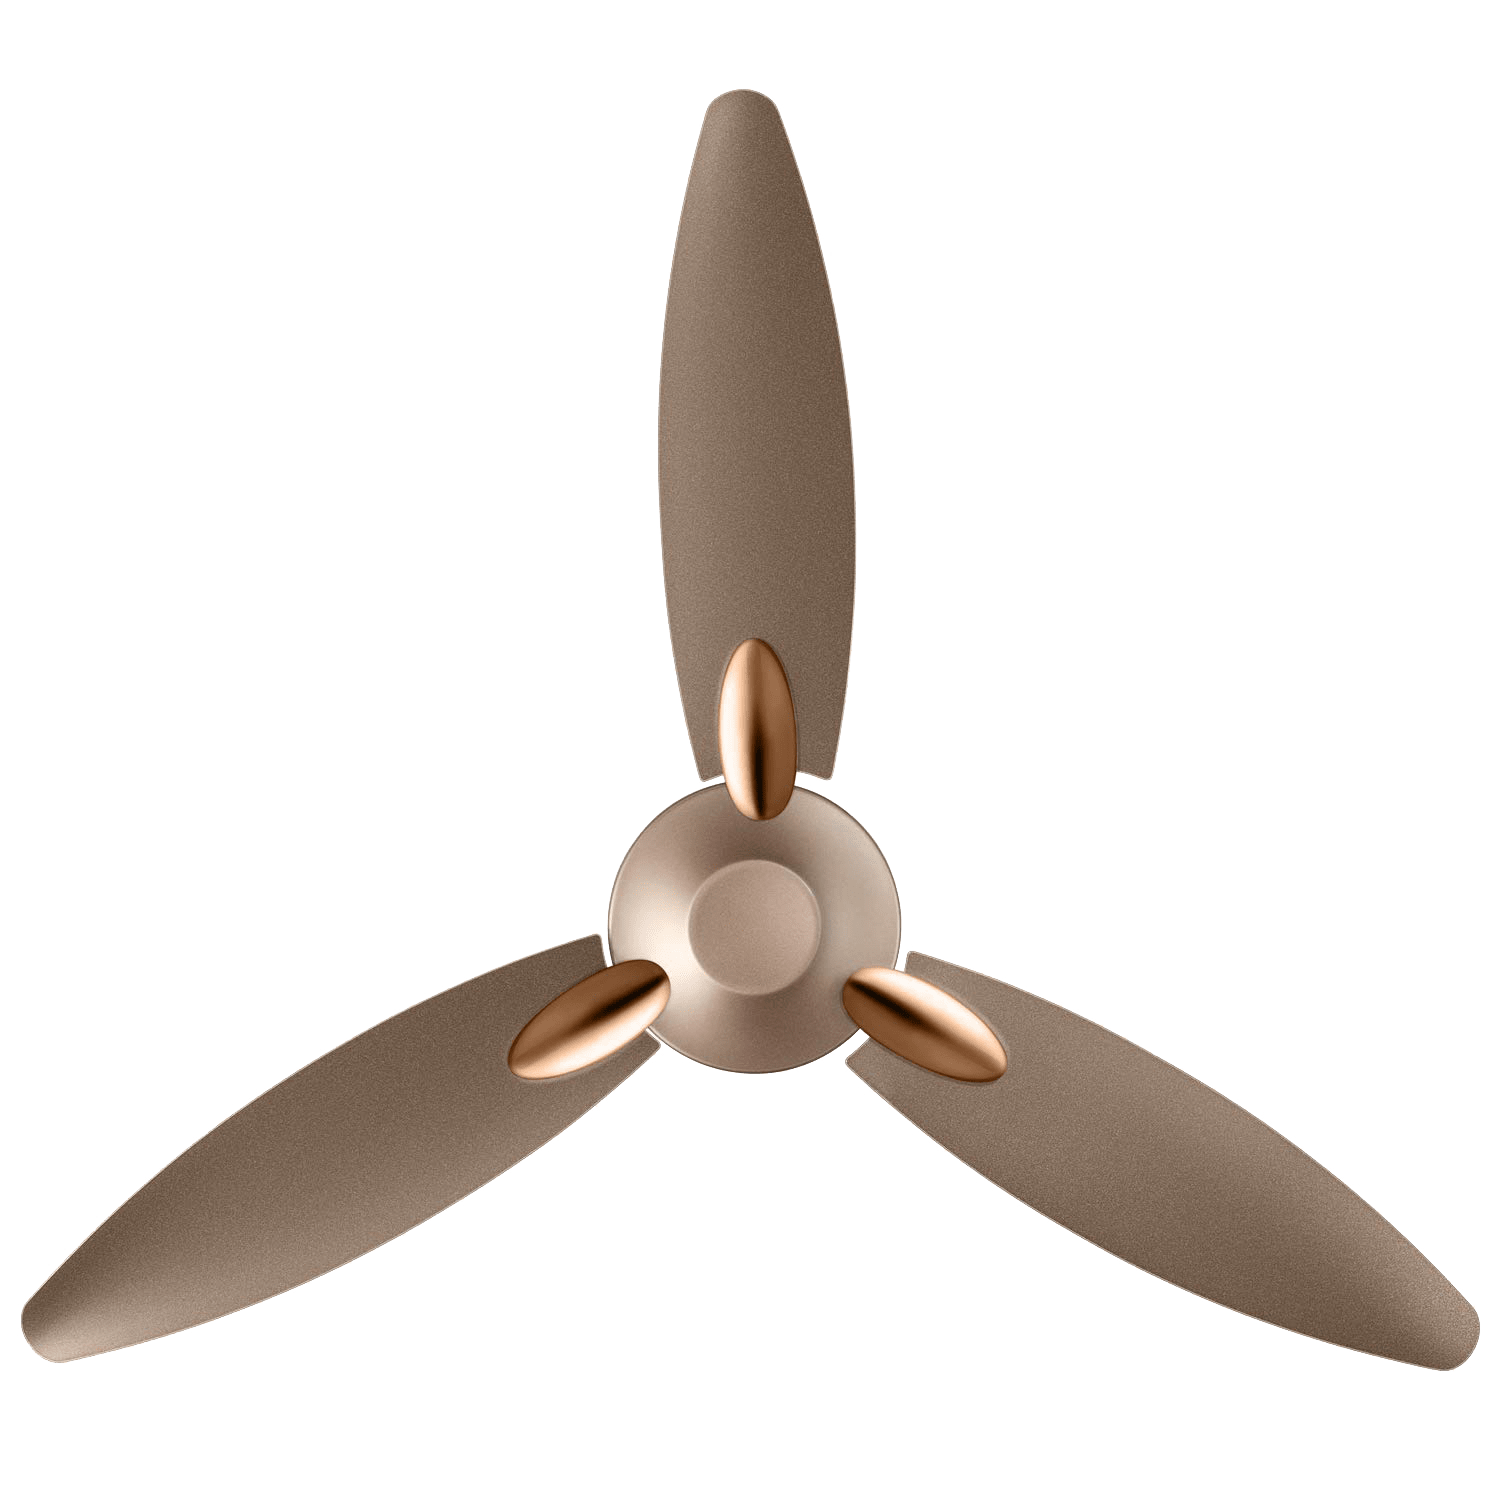 Usha Bloom Daffodil 125cm Sweep 3 Blade Ceiling Fan (Inverter Compatible, 11105BL62GBW, Sparkle Golden & Brown)